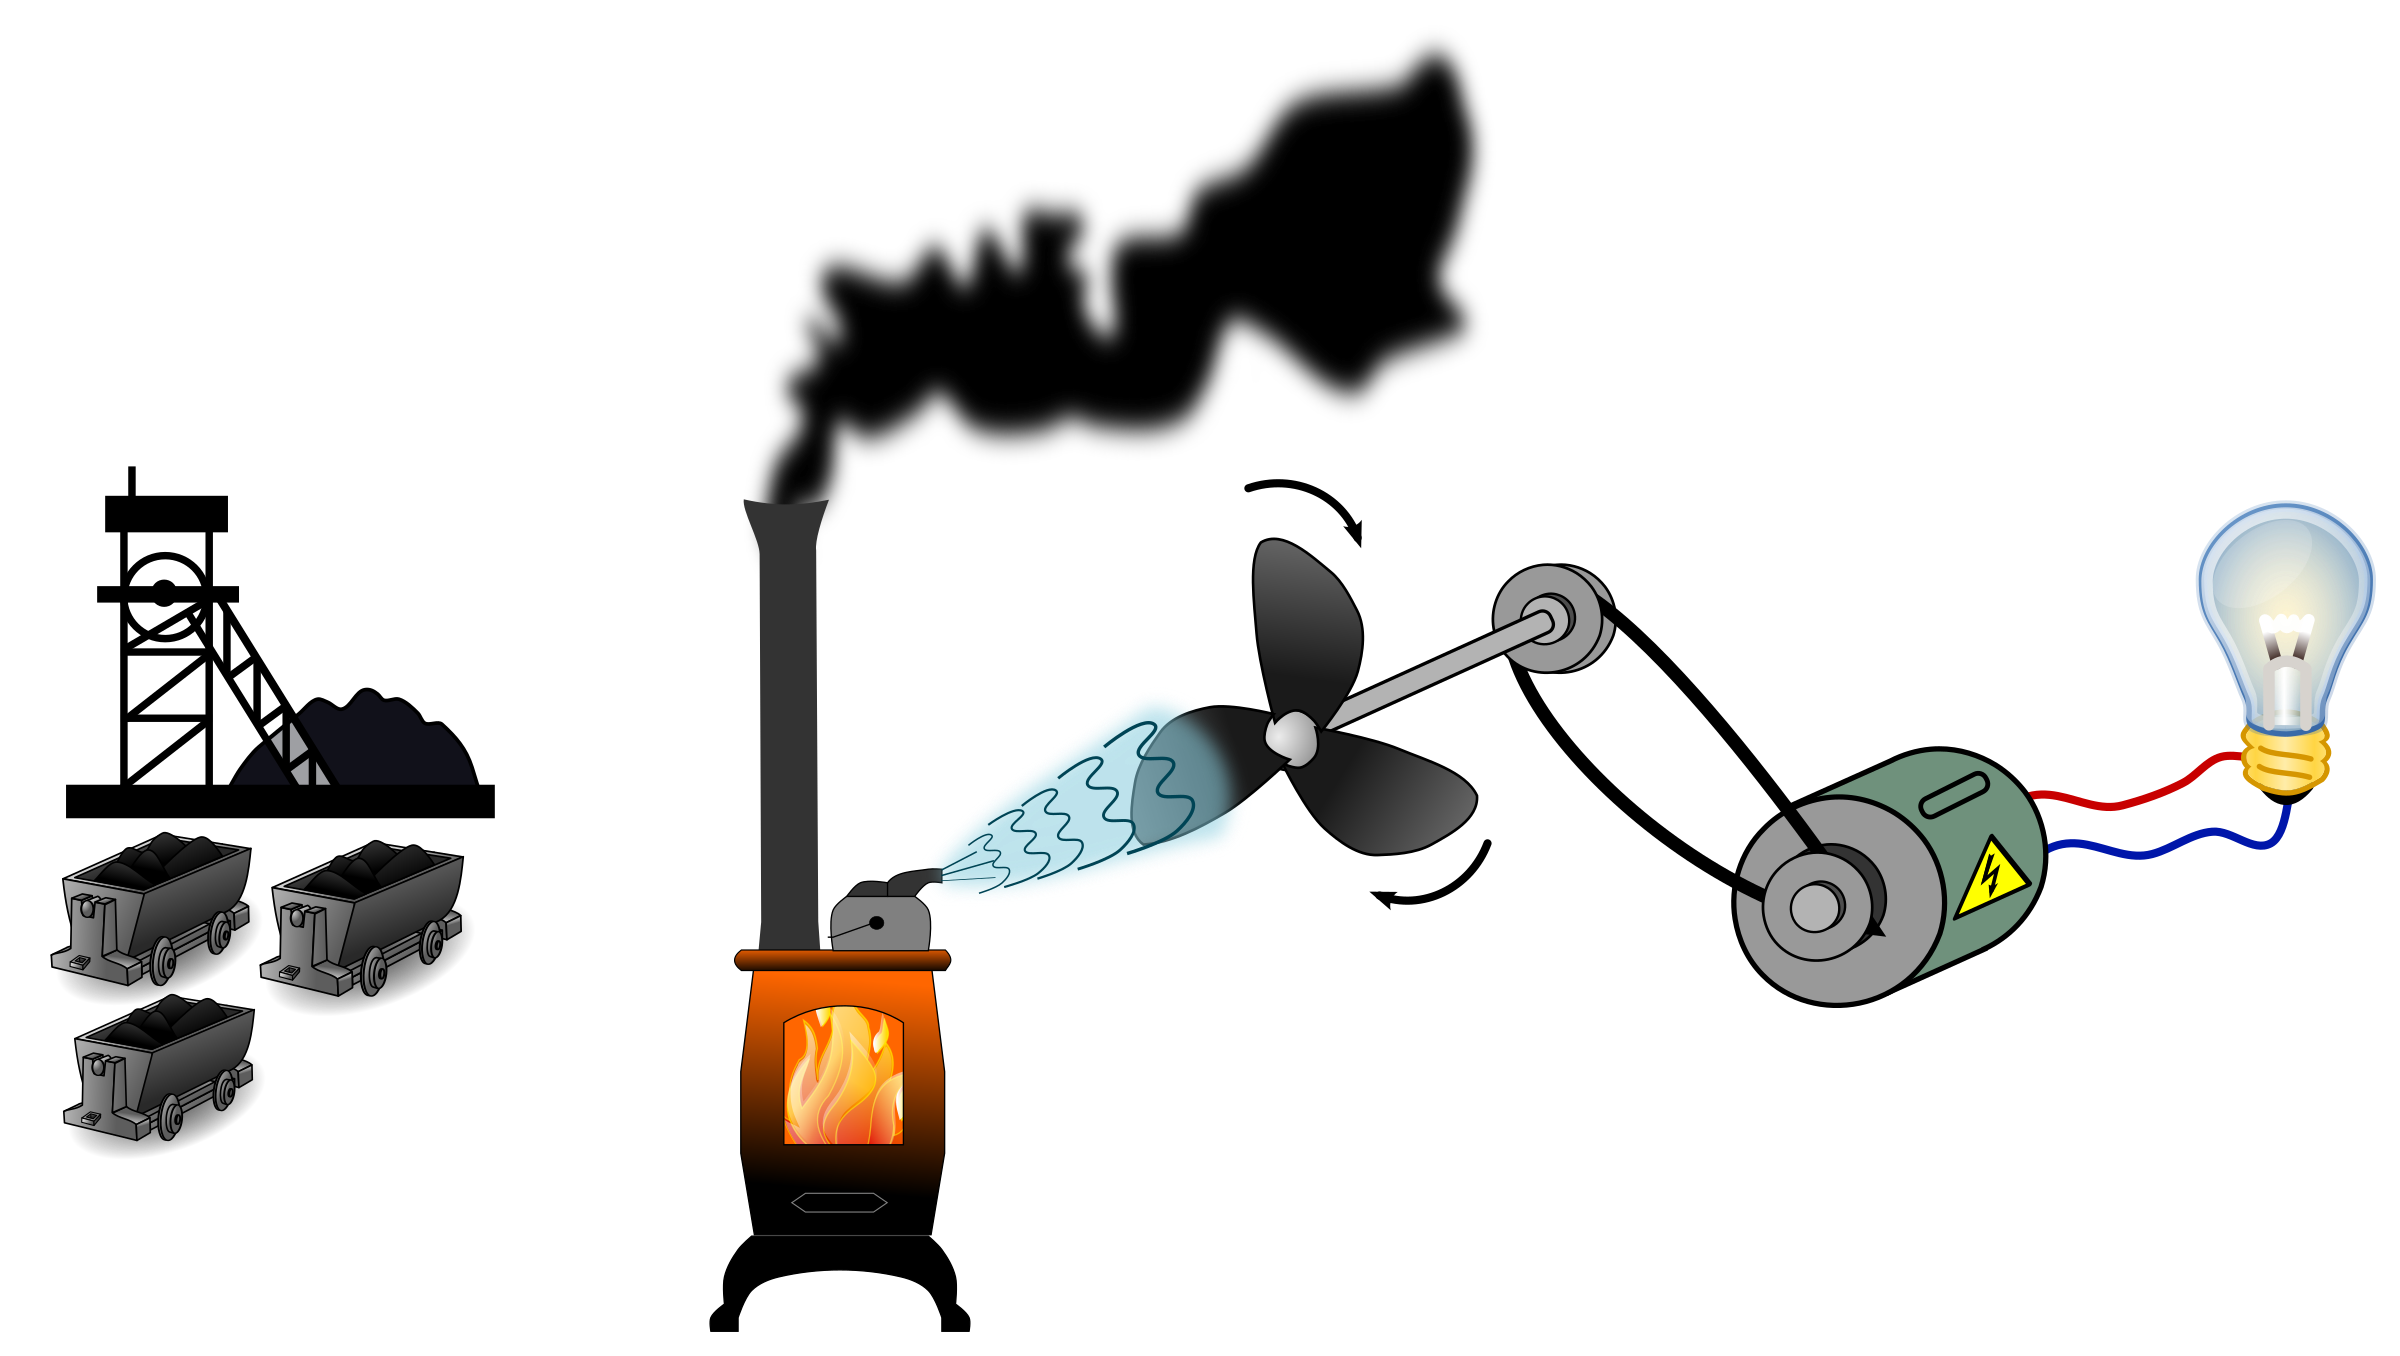 Electric clipart electricity generation. Power plant thermal coal